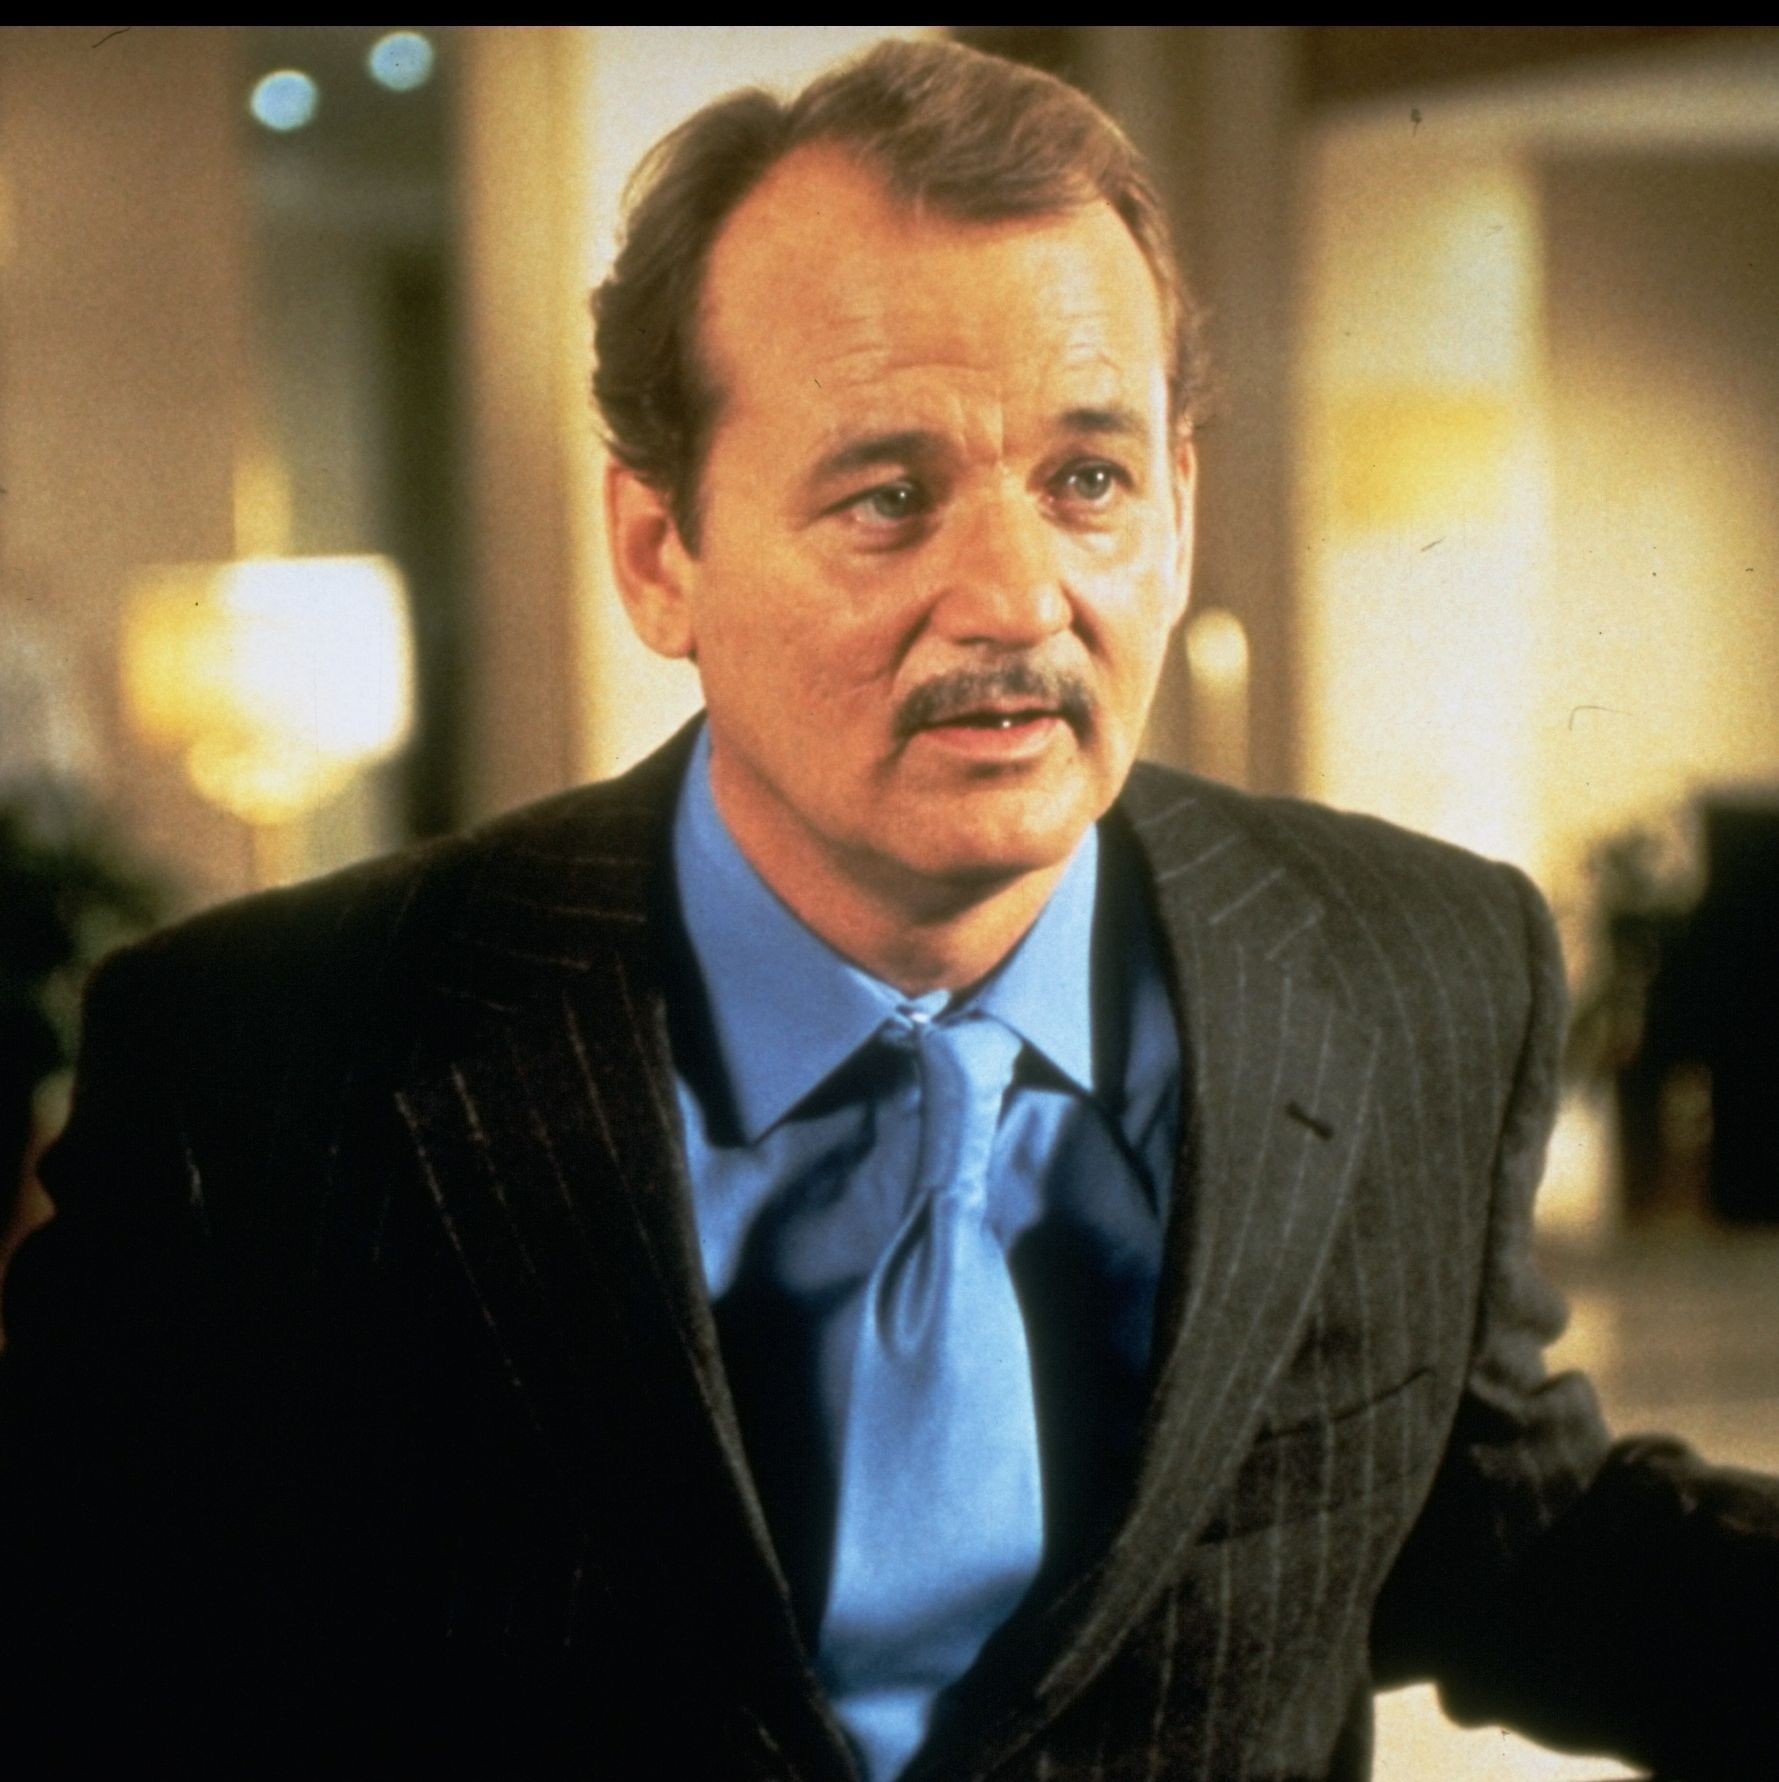 1998: Bill Murray The famous actor used his mustache in a variety of contexts, most notably in movies like Rushmore for the character of Herman Blume.